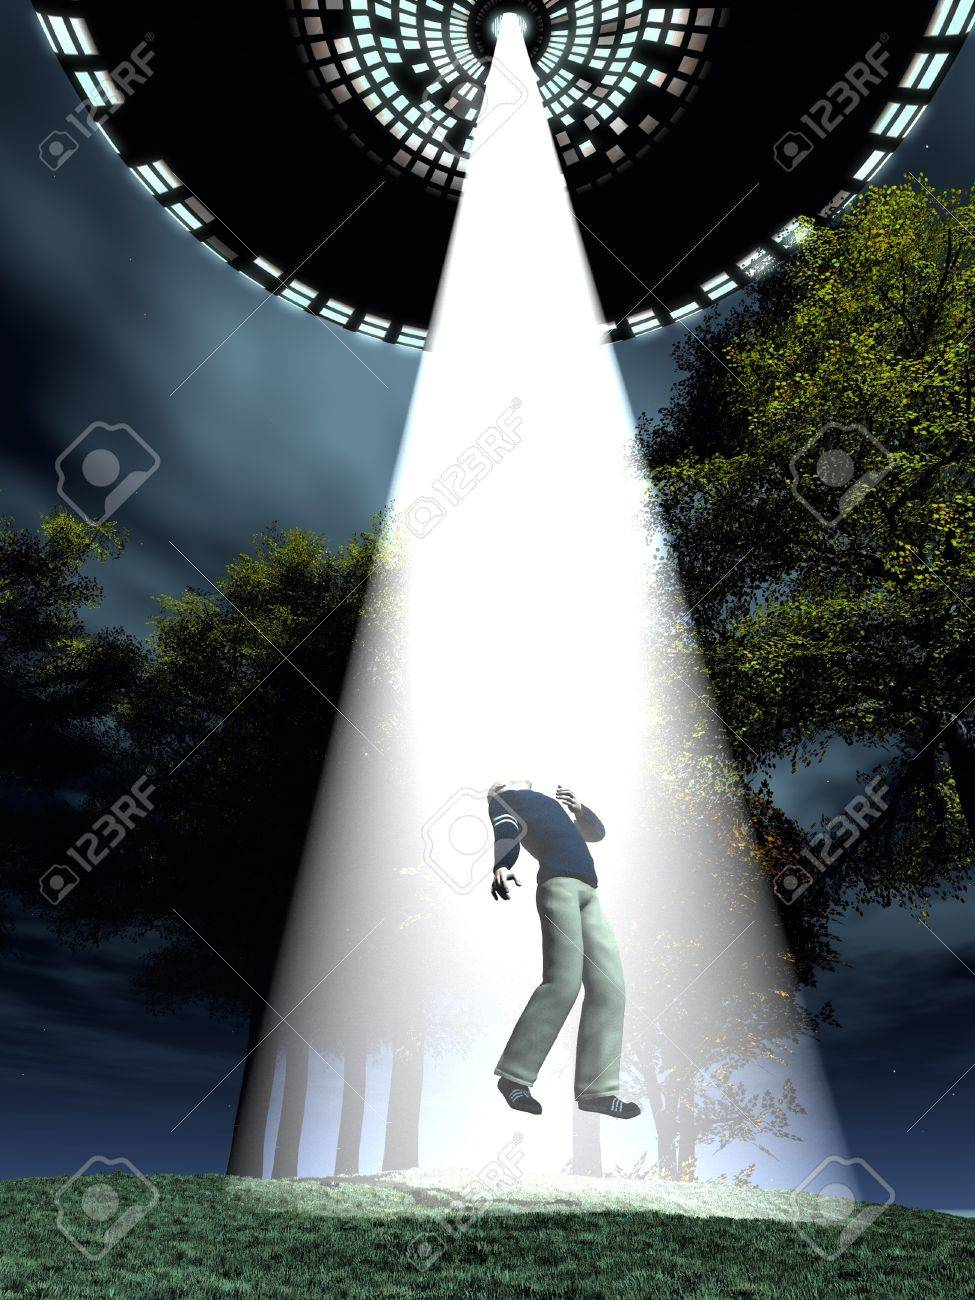 Flying saucer uses tractor beam to abduct subject Stock Photo - 14648473